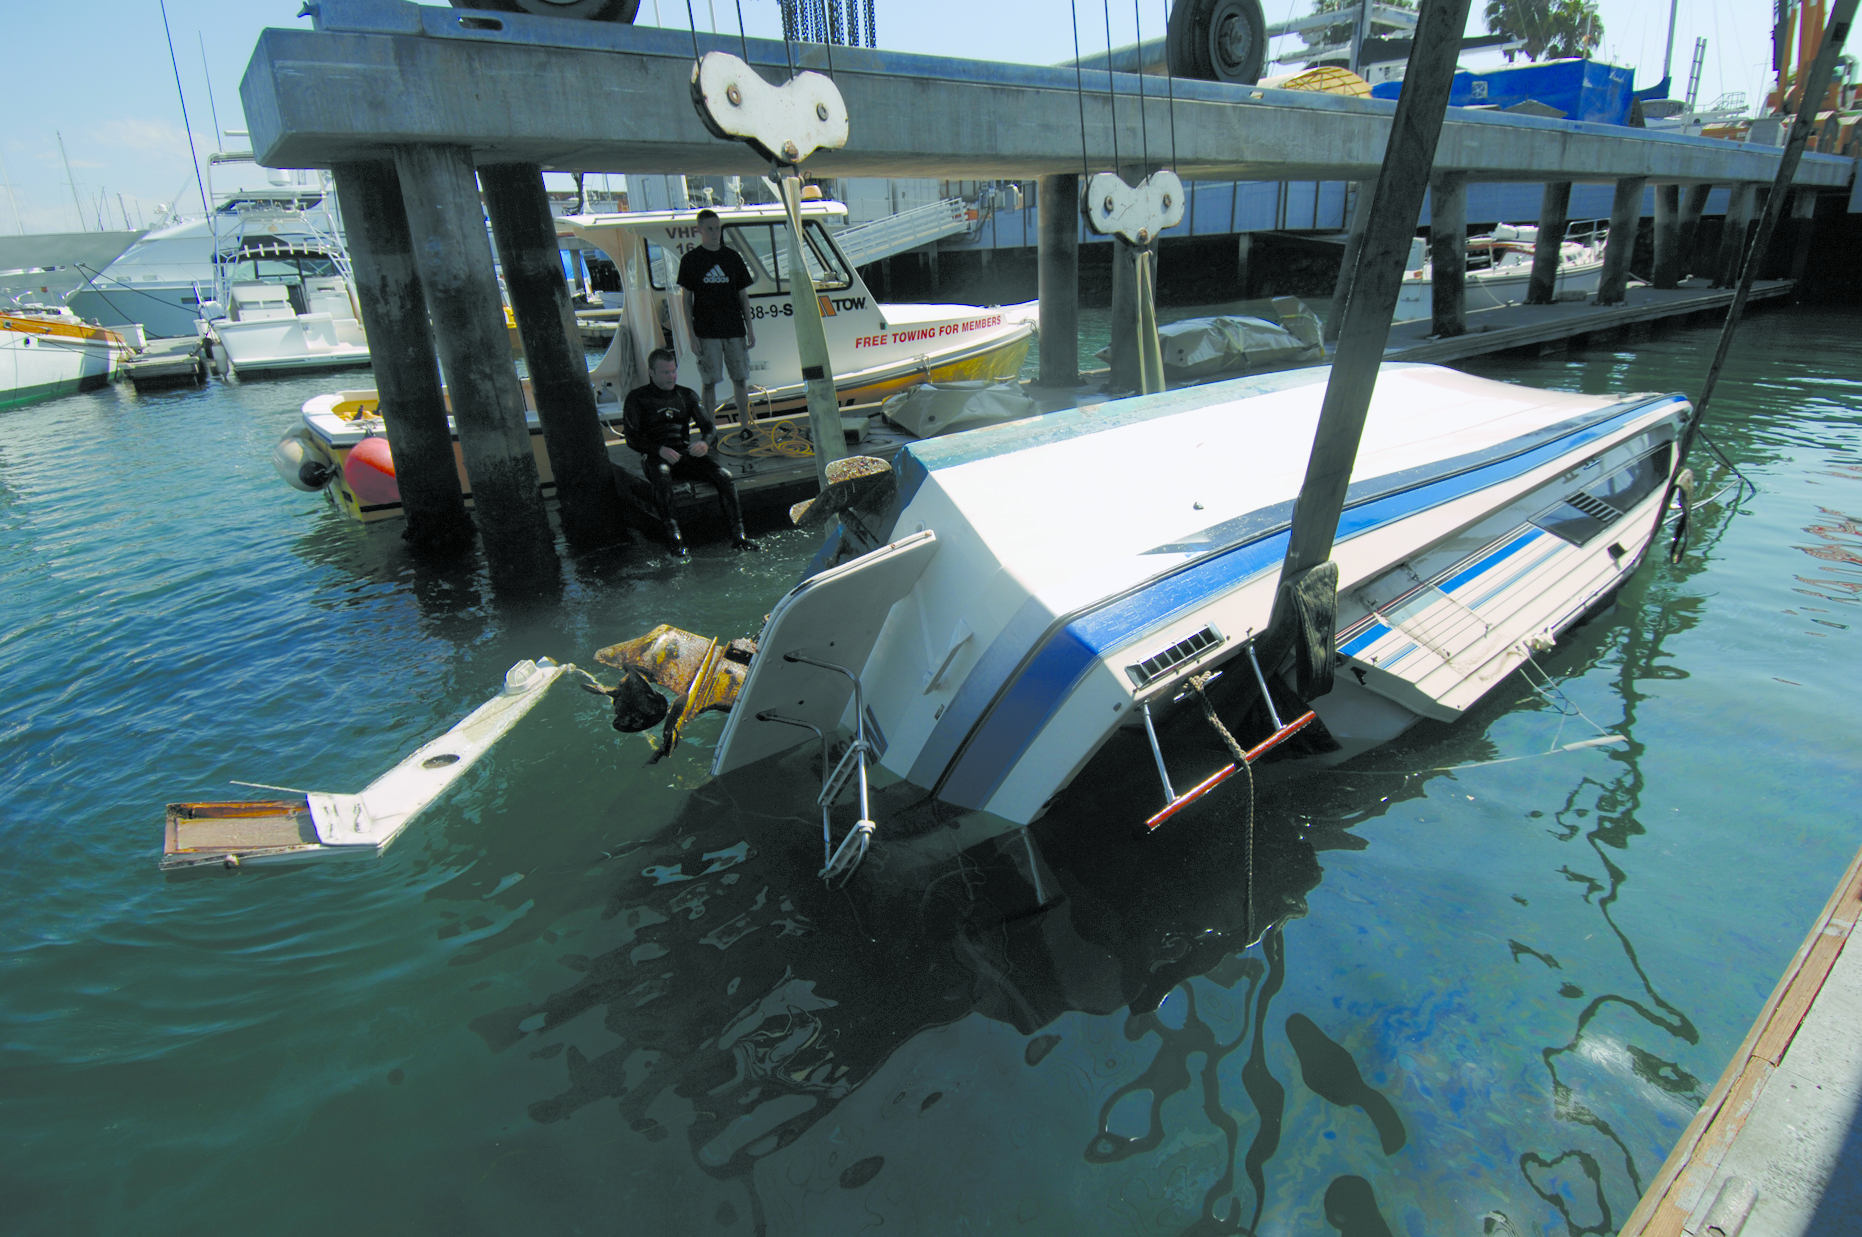 L.A. County Sheriff's Department Gets $67,000 for Derelict Vessel Disposal